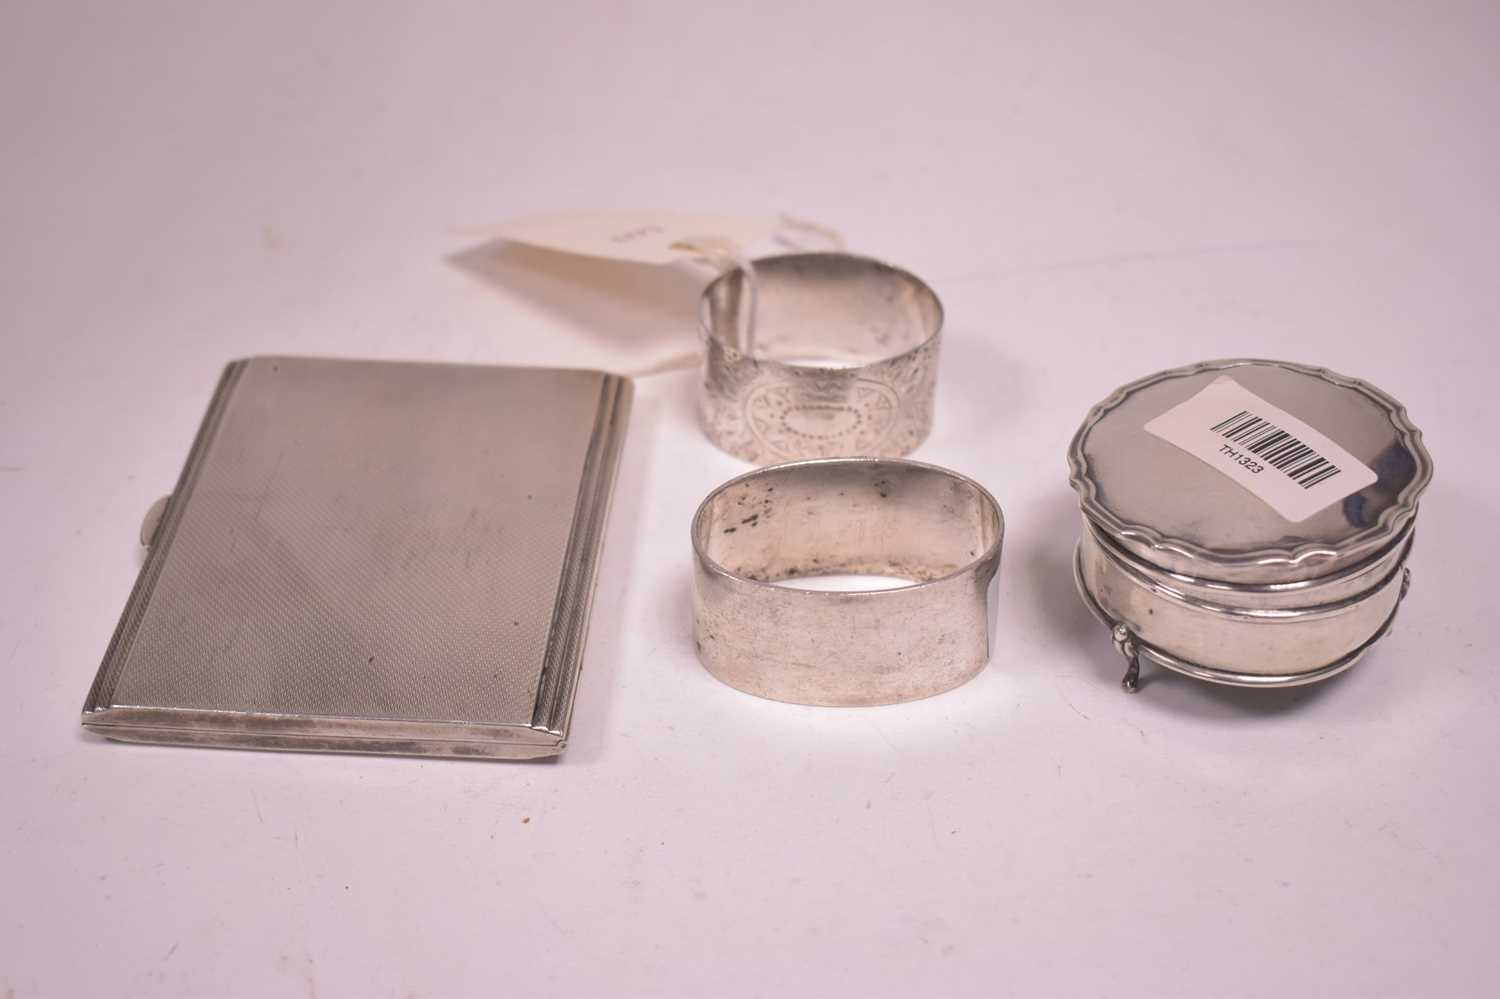 Lot 307-Silver cigarette case and other items